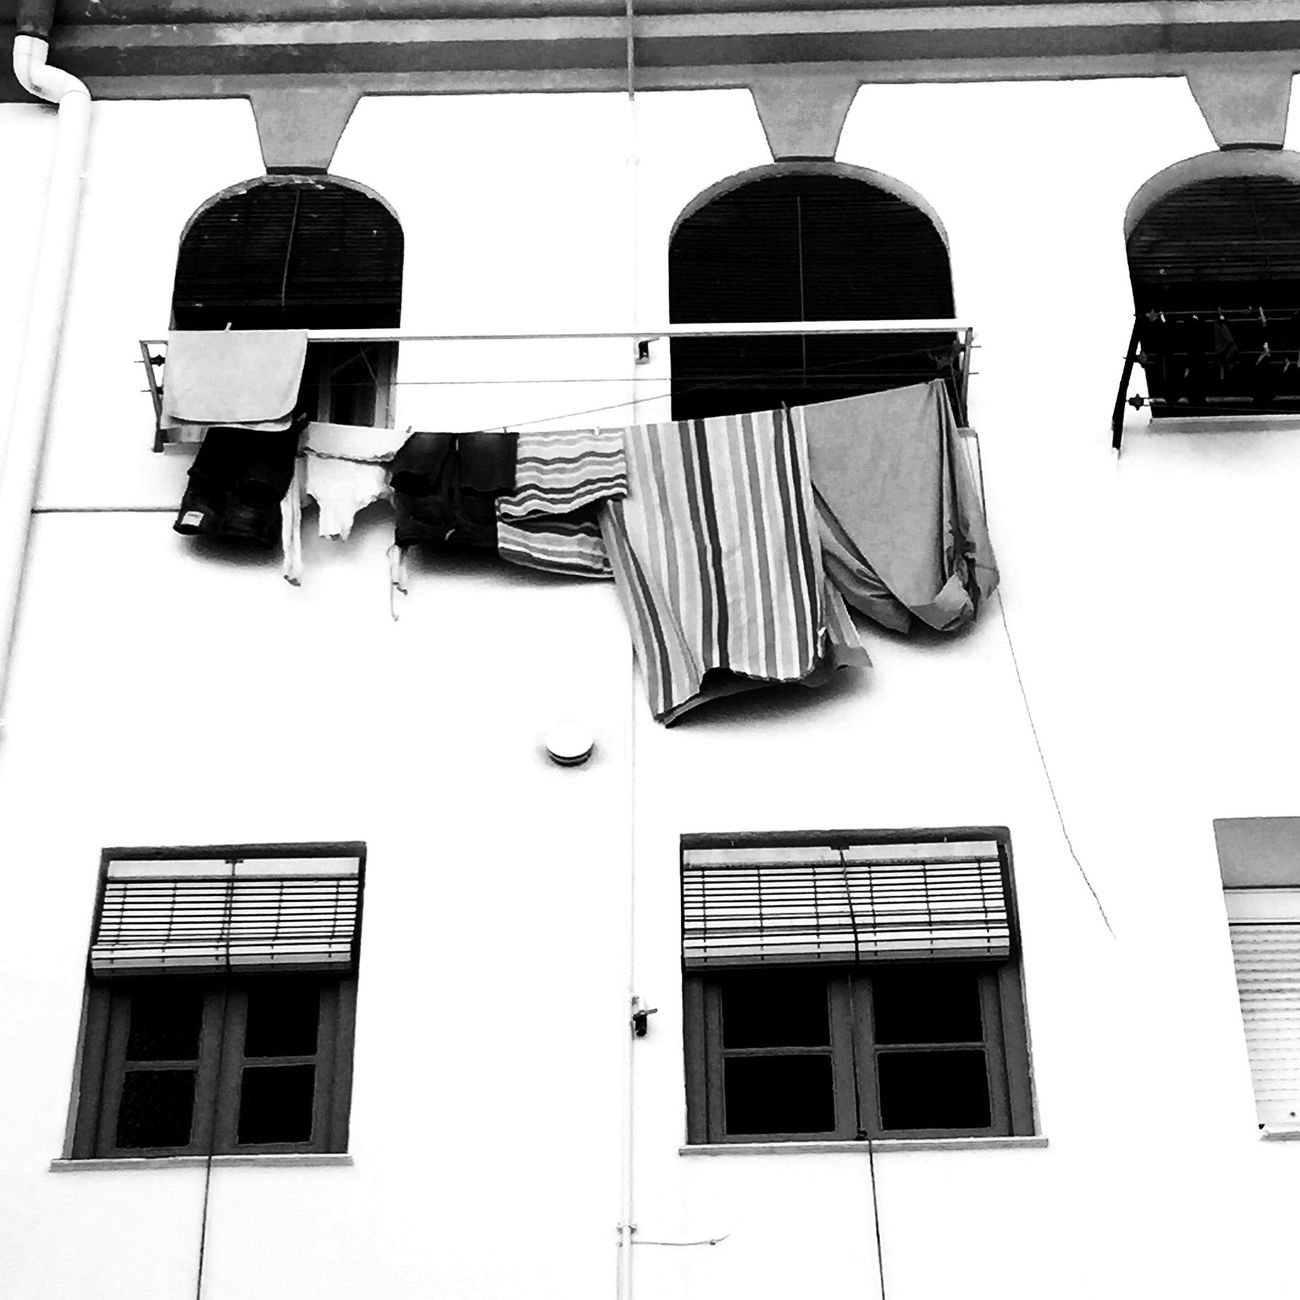 En un patio de Sevilla Bw_collection Black And White Blackandwhite Monochrome Streetphoto_bw EyeEm Best Shots Urban Window